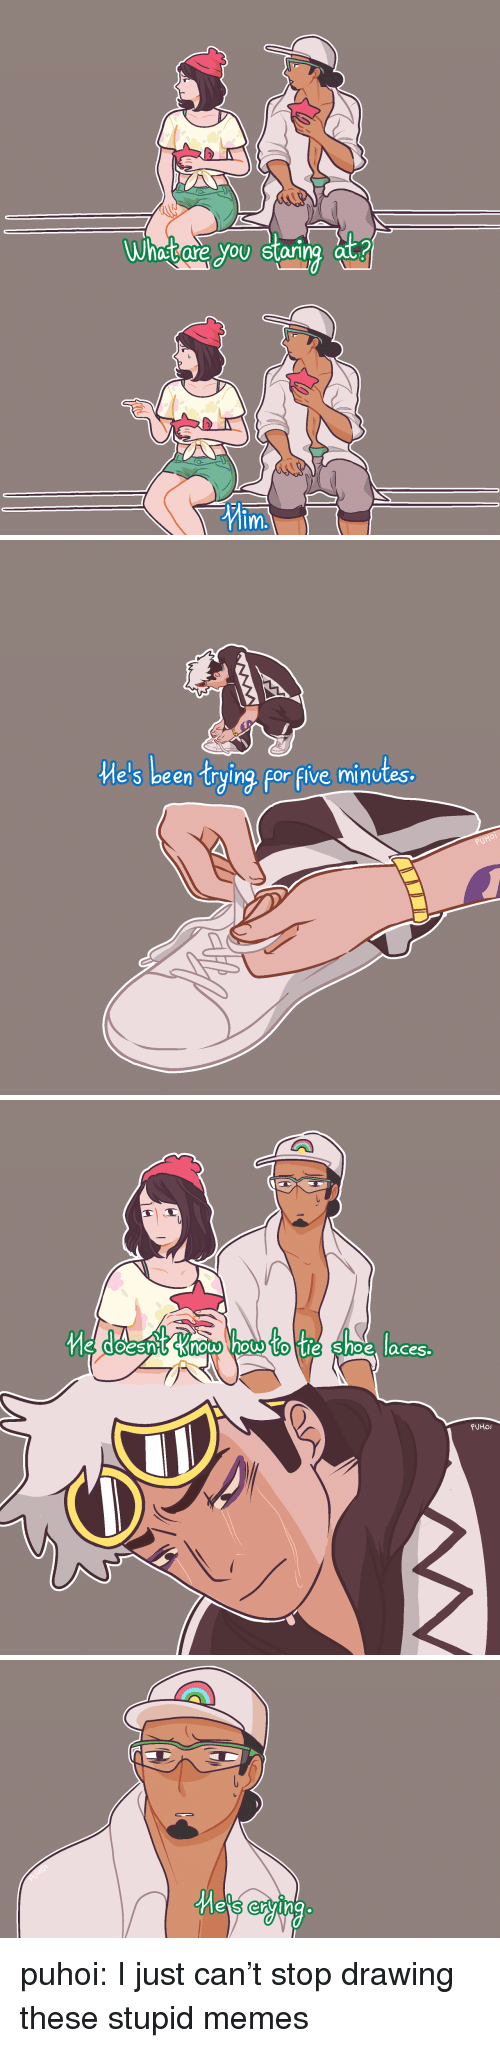 Stupid Memes: atare you star  ng at?  m.   e's been trying for flve minutes  1   e doesn& Know how to tie Shoe laces  PUHoi   es crying puhoi: I just can't stop drawing these stupid memes